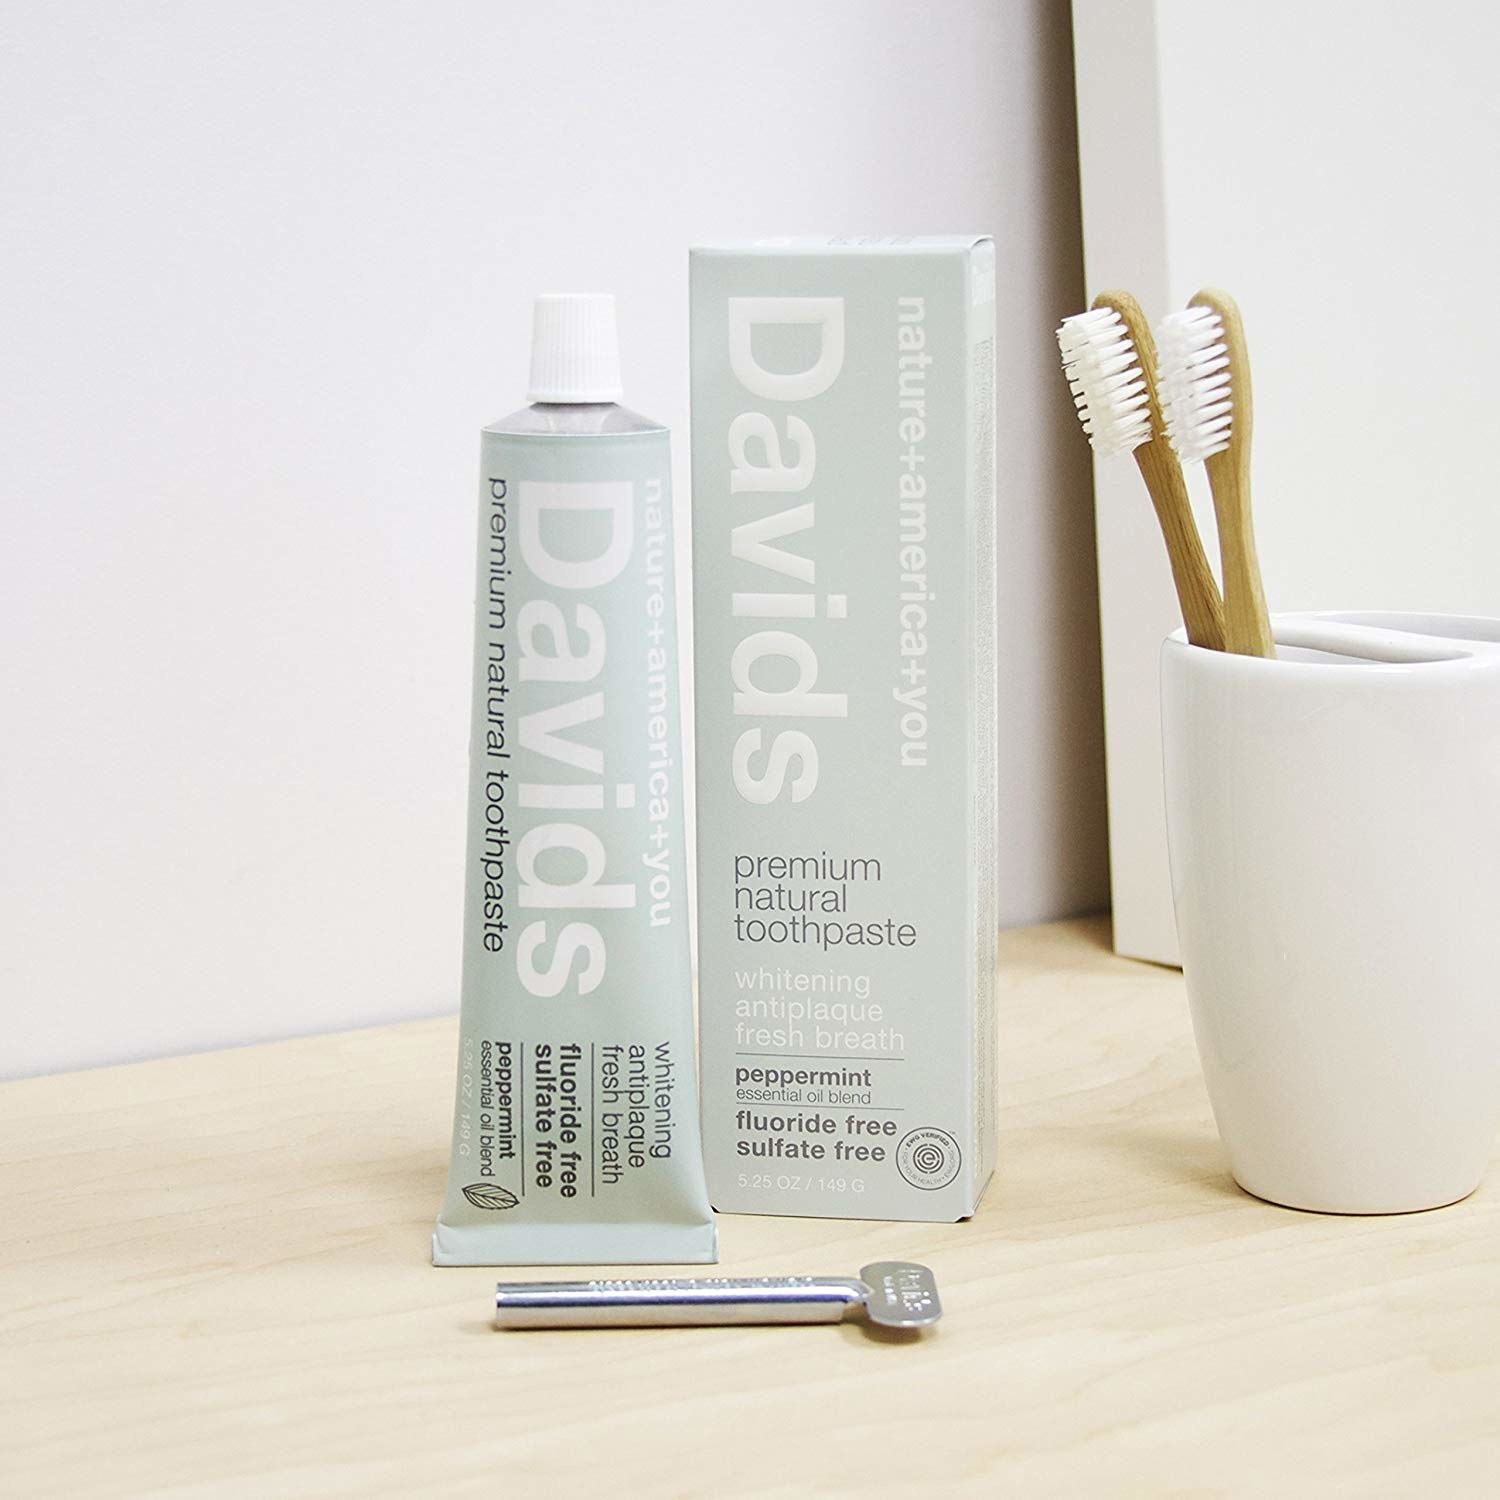 Davids toothpaste with tube roller